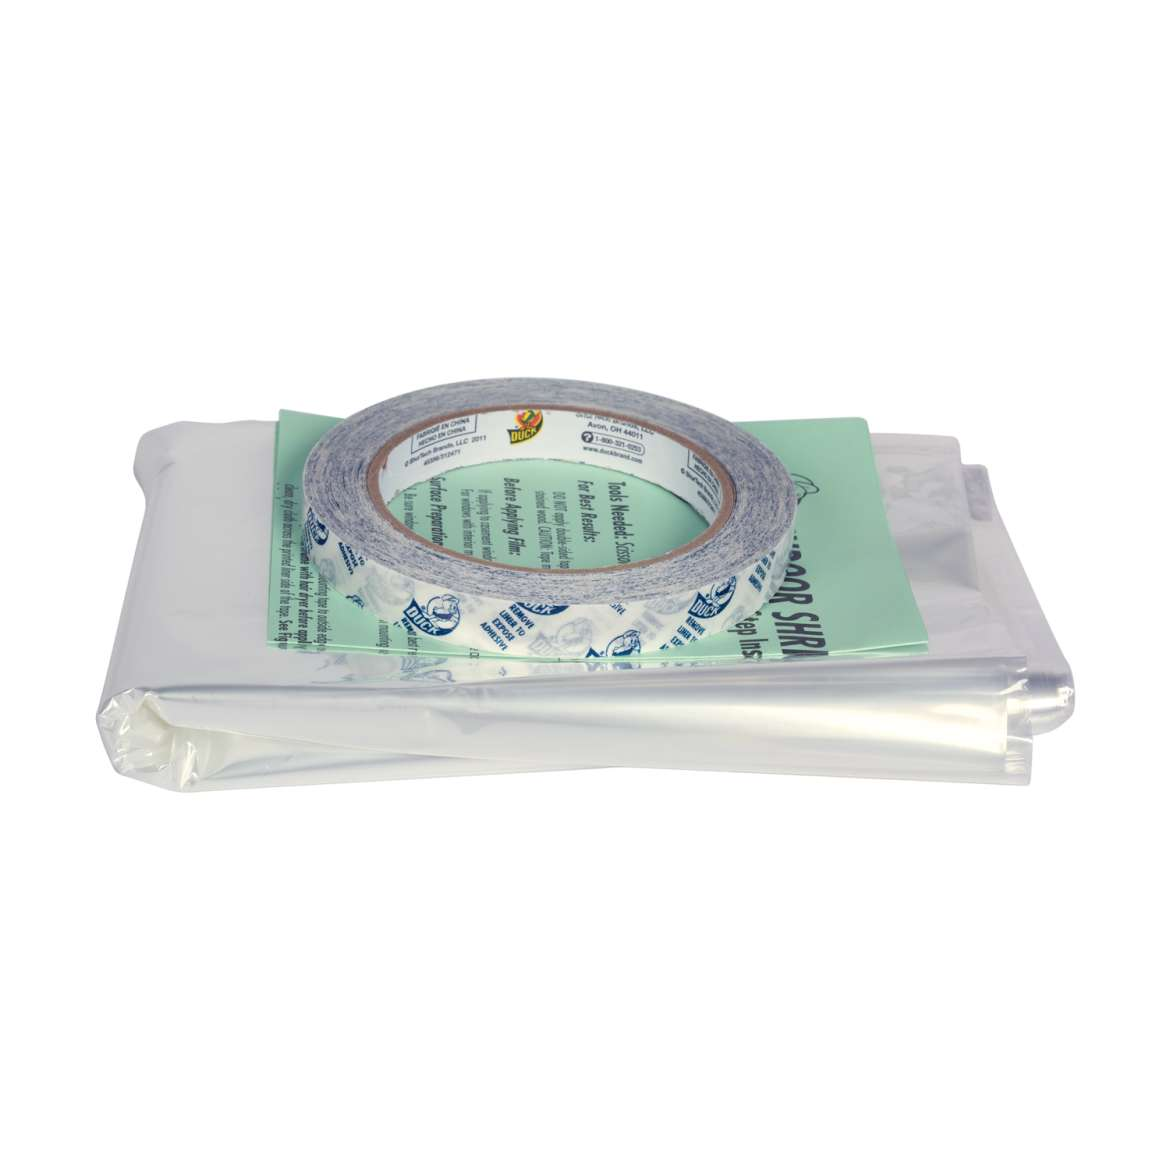 Shrink Film Window Insulation Kit